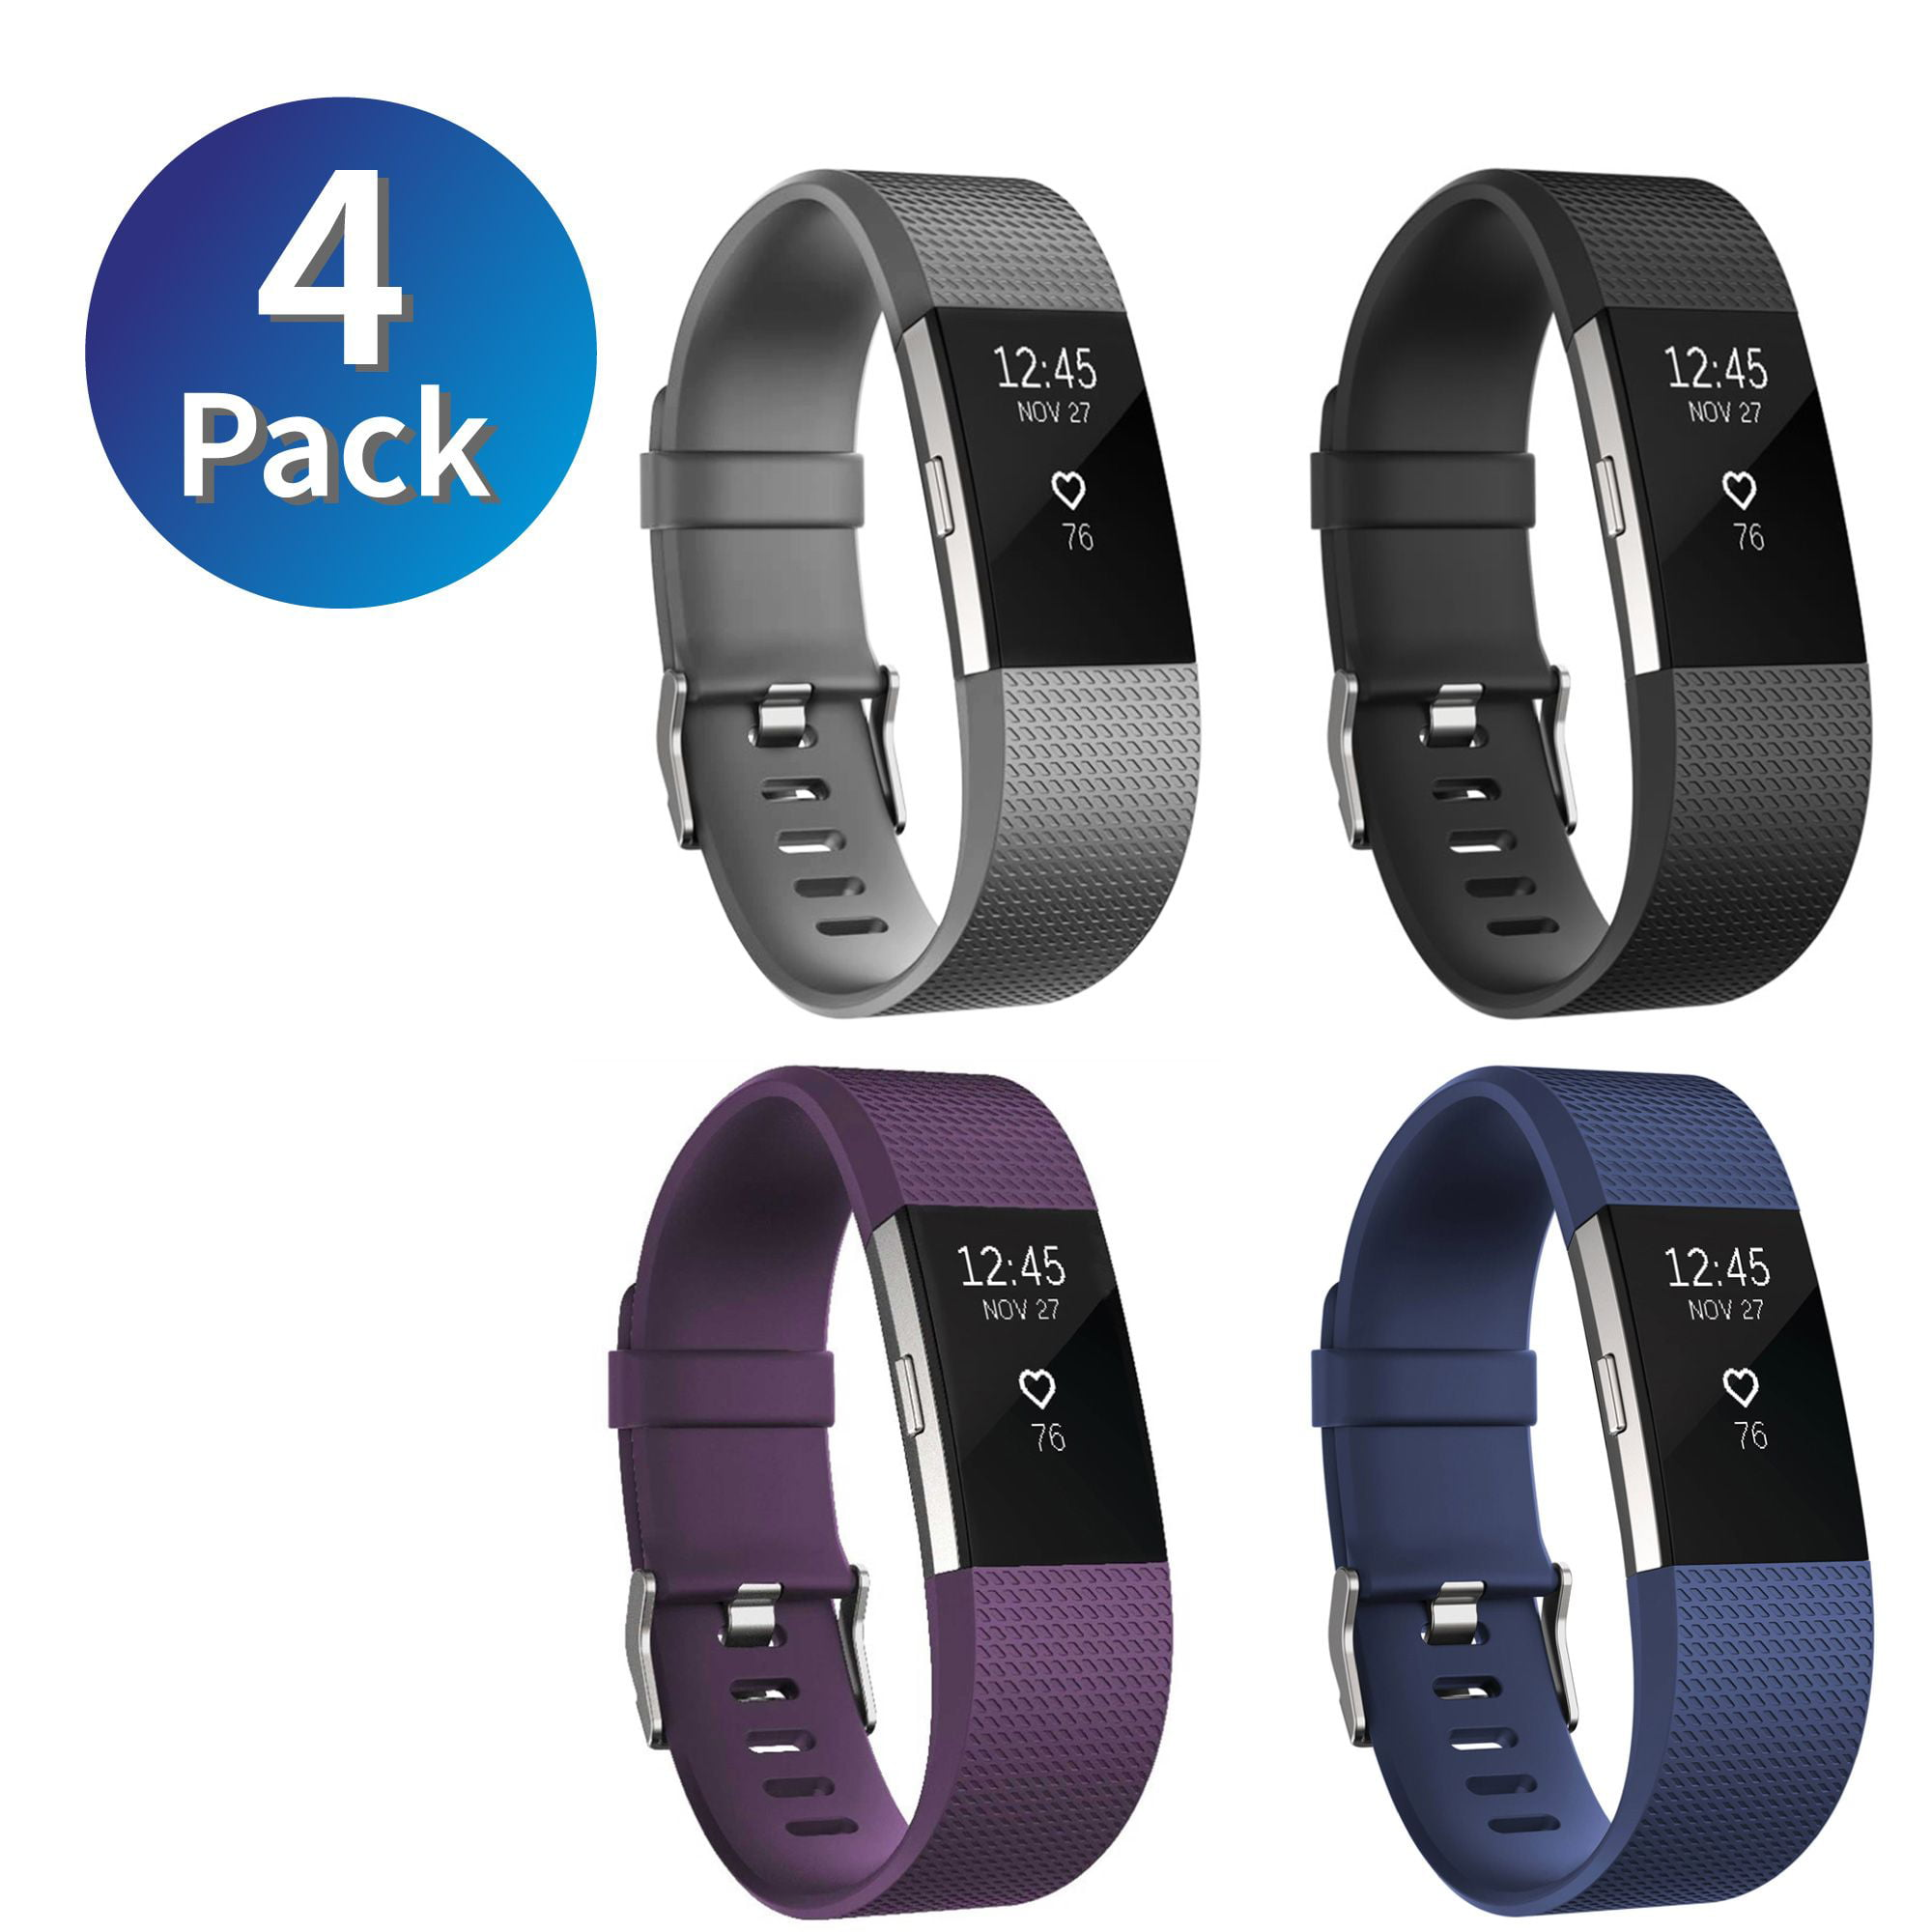 Zodaca 4-pack (Black & Purple & Gray & Dark Blue) fitbit charge 2  Replacement Bands Accessory Soft Silicone Rubber Adjustable Wristband Strap  Band